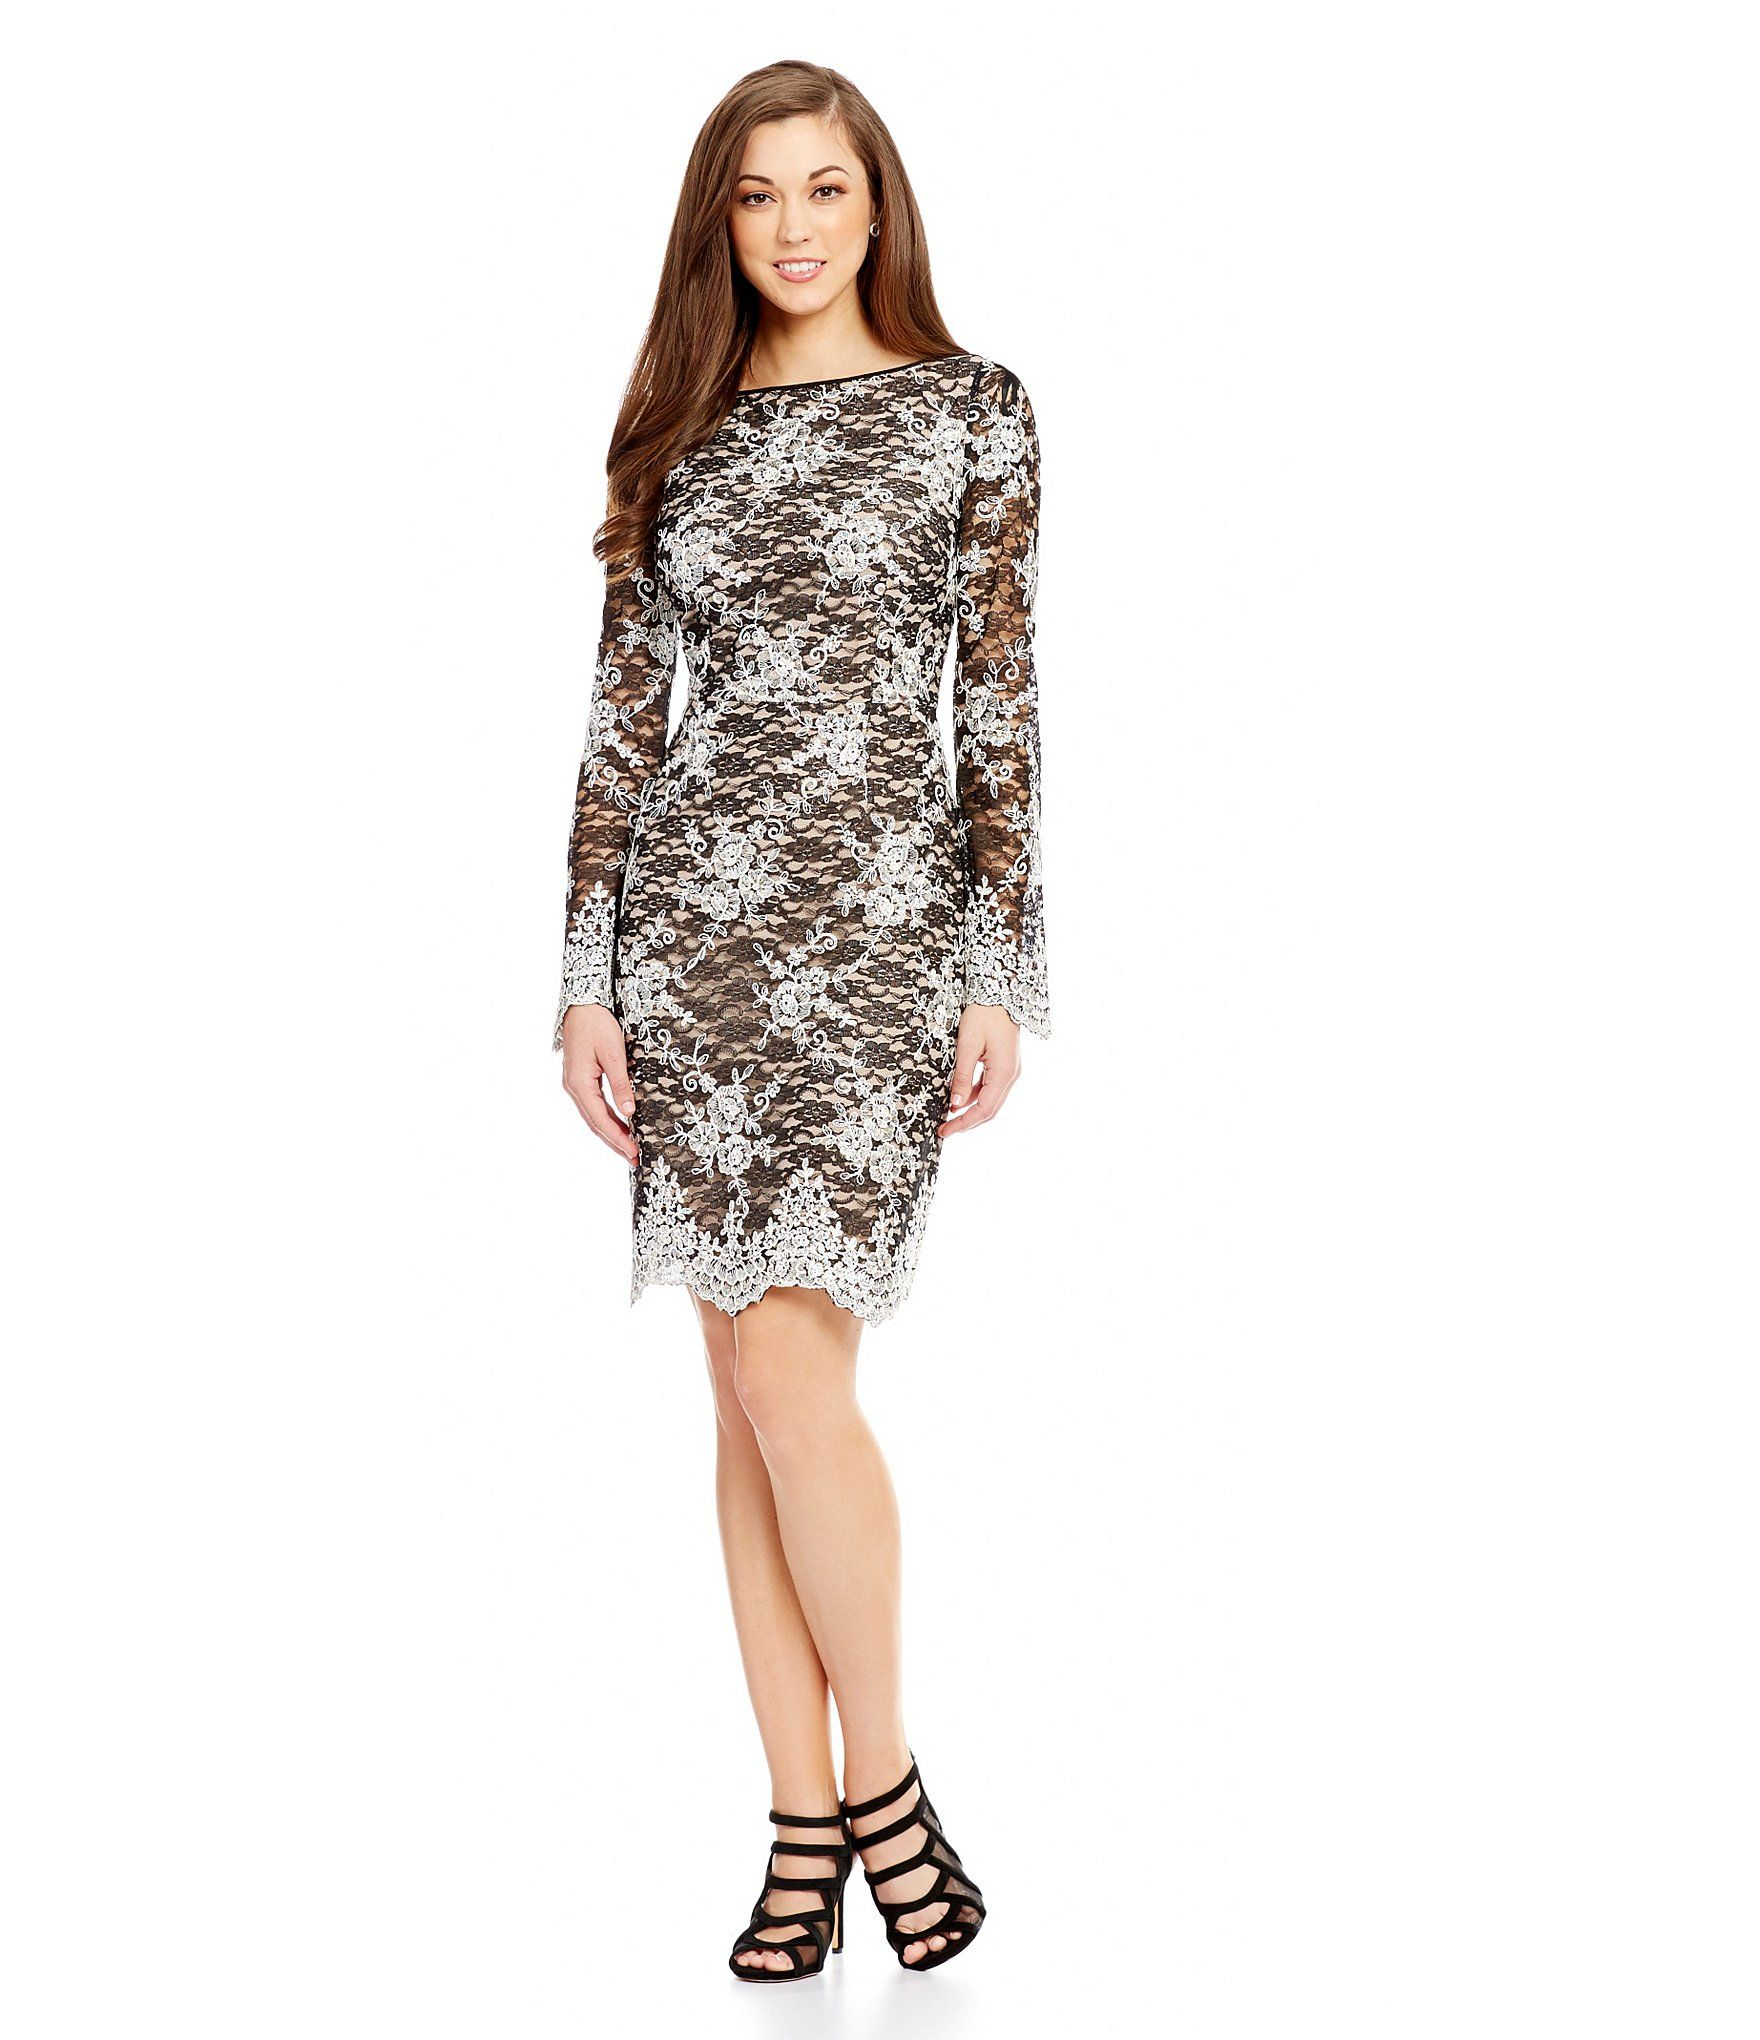 efba9f6728b Shop for Antonio Melani Holly Lace Sheath Dress at Dillards.com. Visit  Dillards.com to find clothing